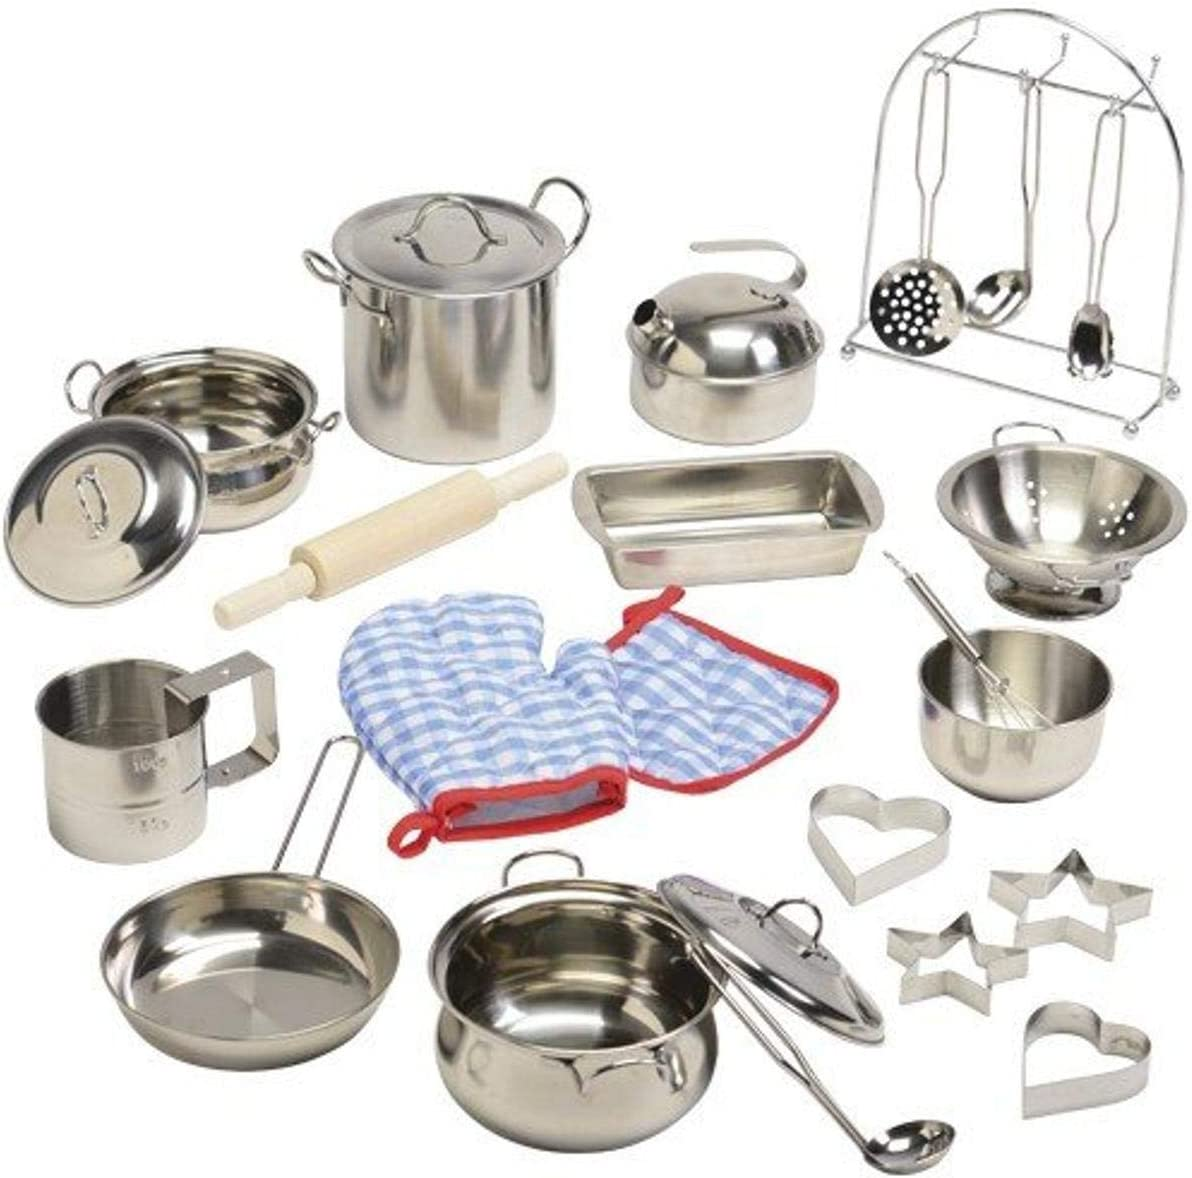 Constructive Playthings Kid-Sized Stainless Steel Cookware for Pretend Play, Ages 4-8